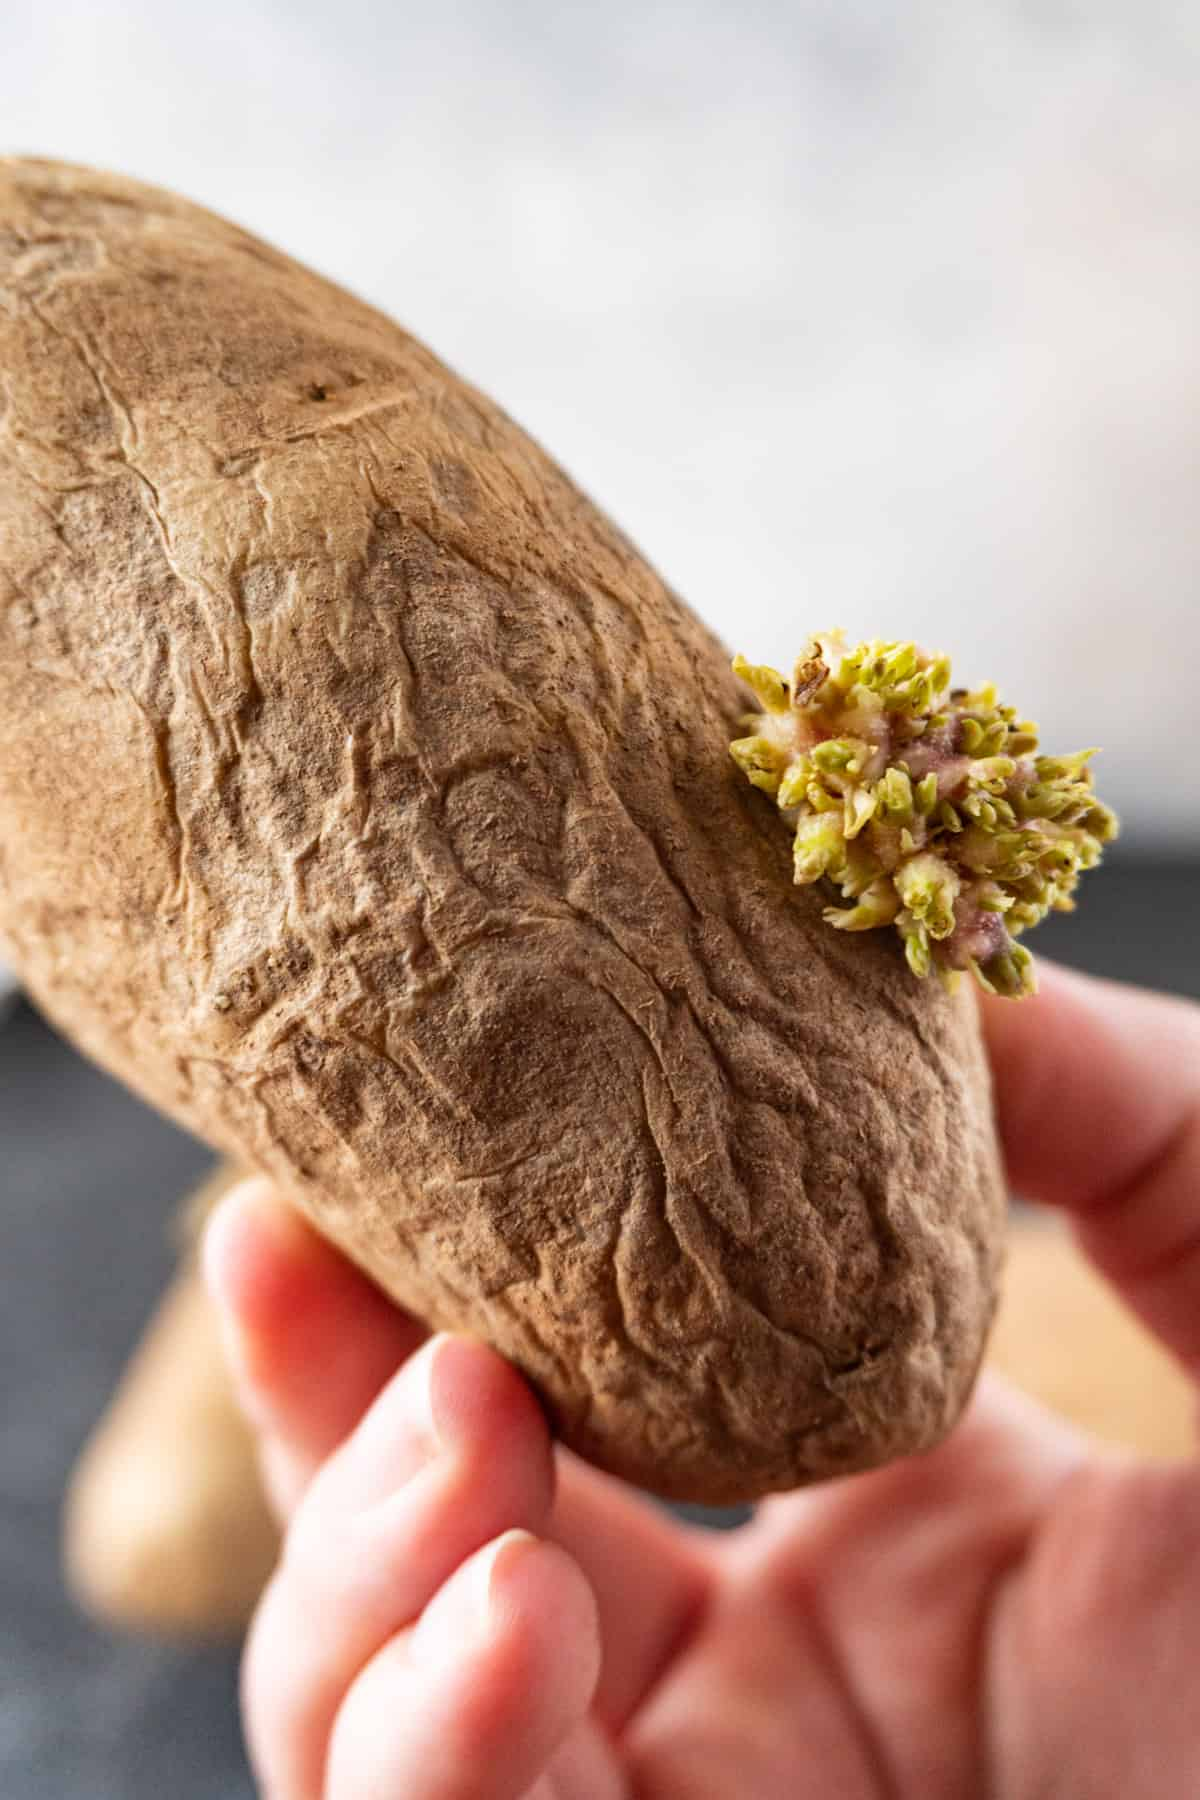 holding a wrinkly sprouted potato